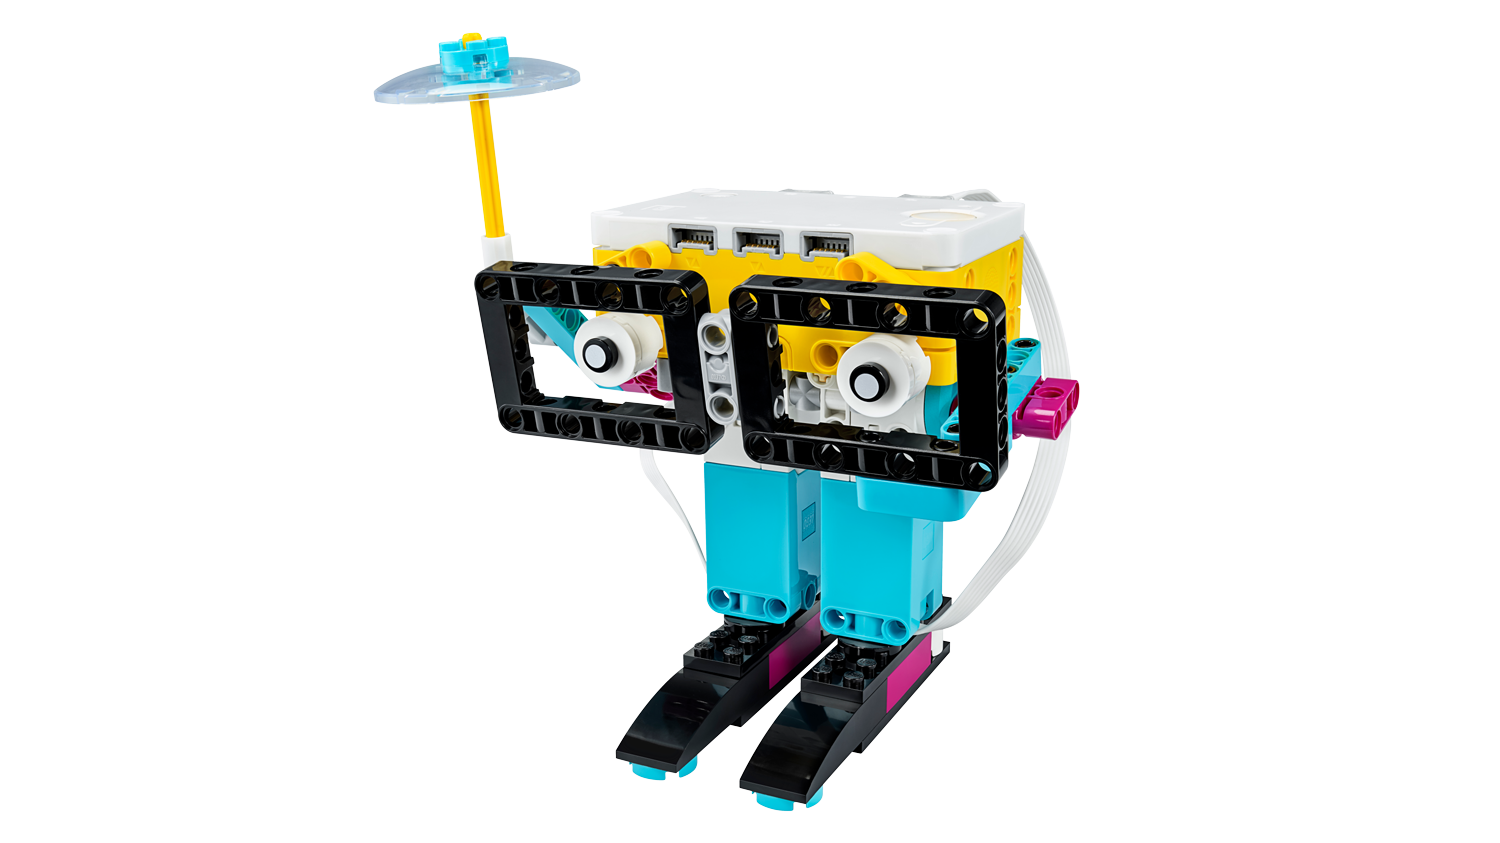 LEGO Education SPIKE Prime Weather Caster model from the Rain or Shine lesson plan